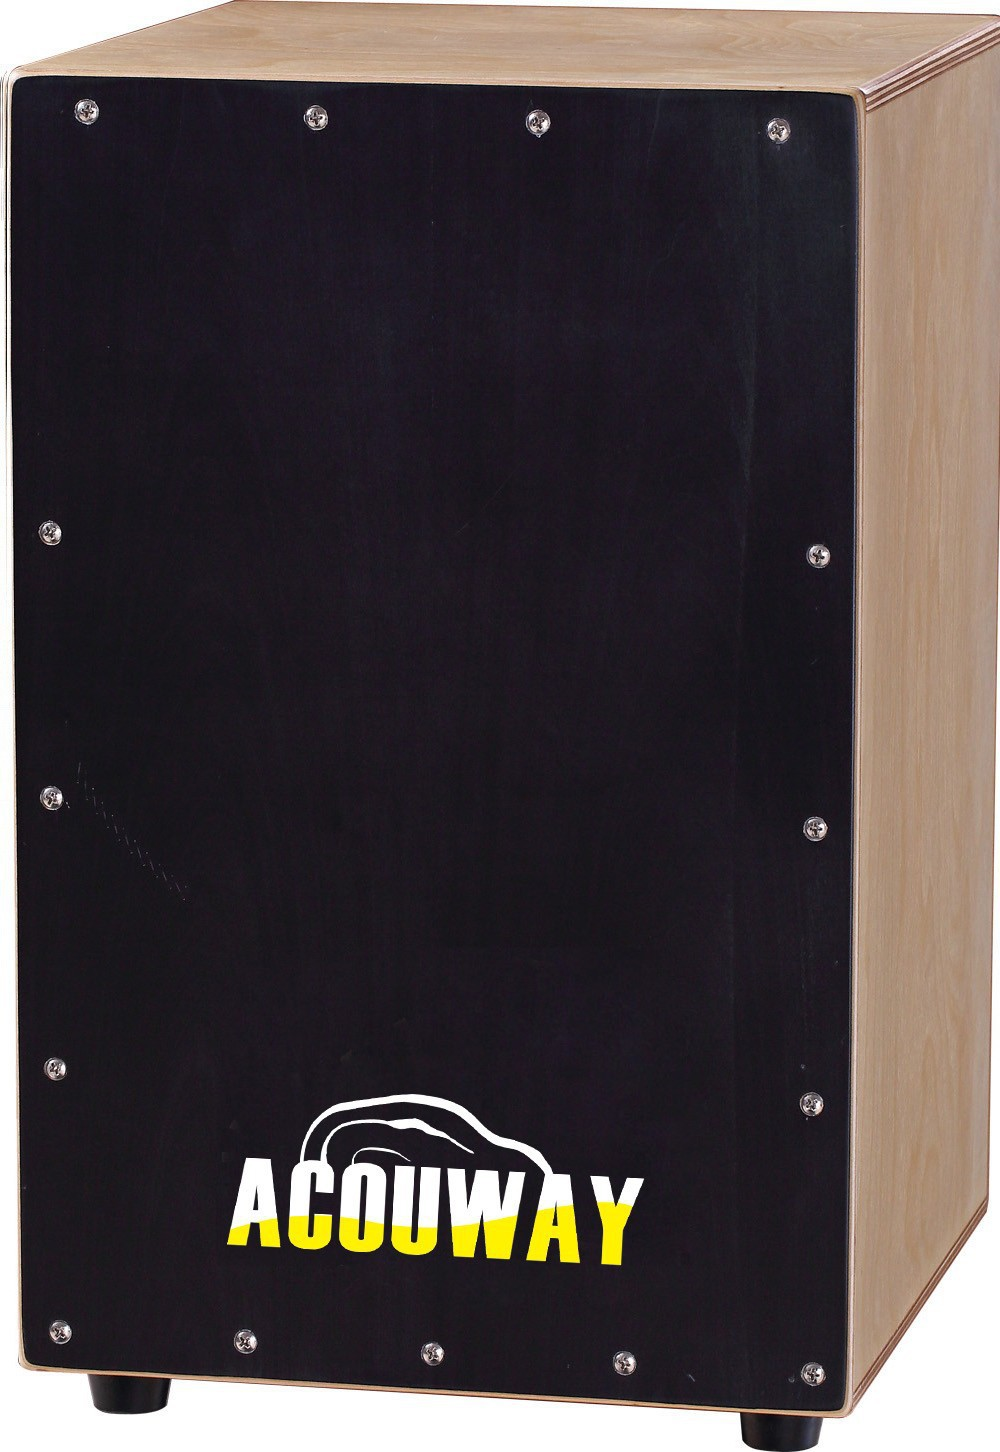 Professional Sale Brand Acouway Acoustic Percussion Flamenco Drum Cajon Also Good Sitting Wooden Stool Chair Box Furniture Percussion Instruments